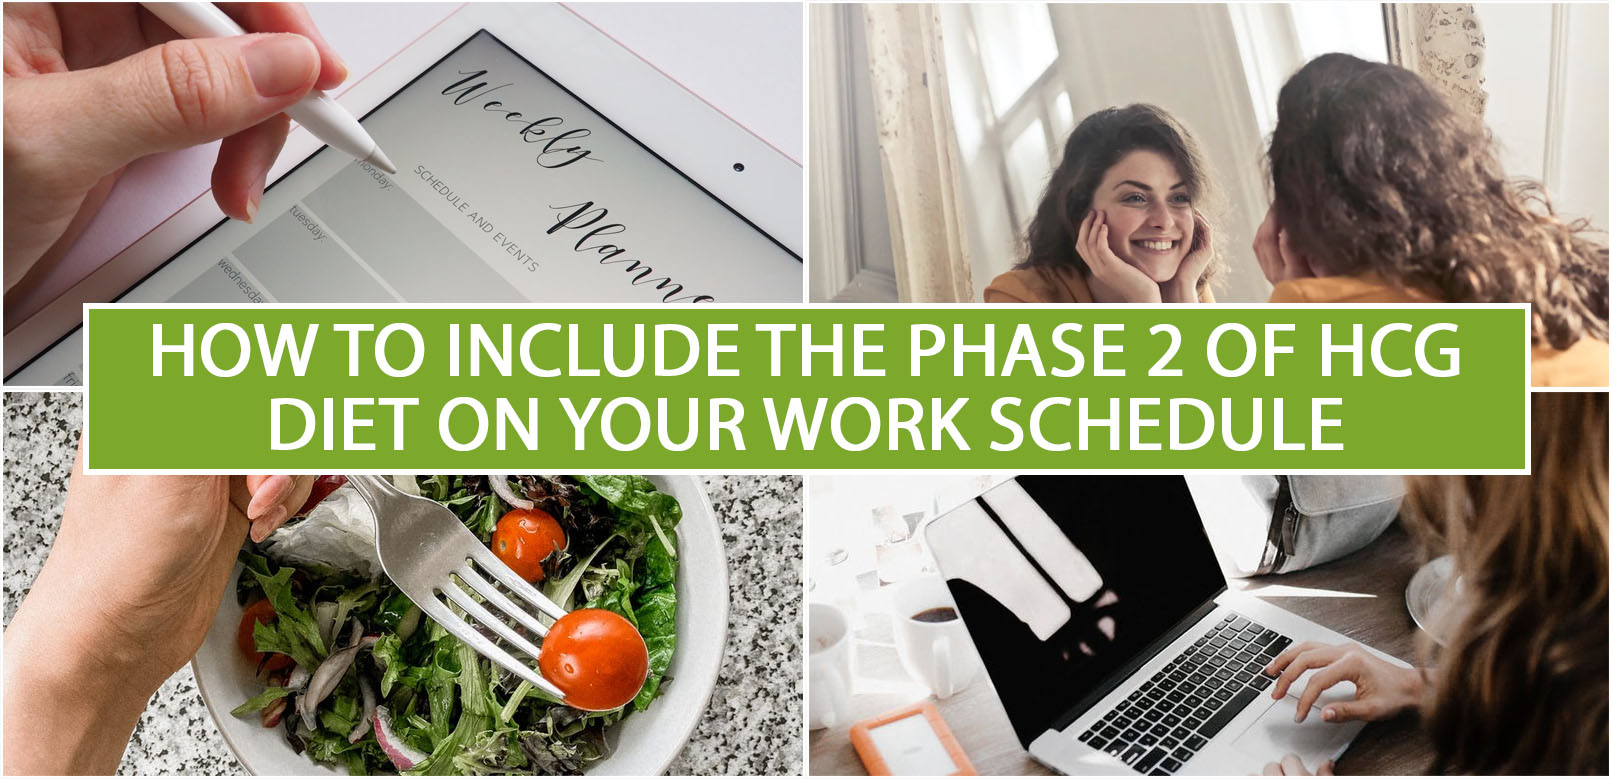 HOW TO INCLUDE THE PHASE 2 OF HCG DIET ON YOUR WORK SCHEDULE